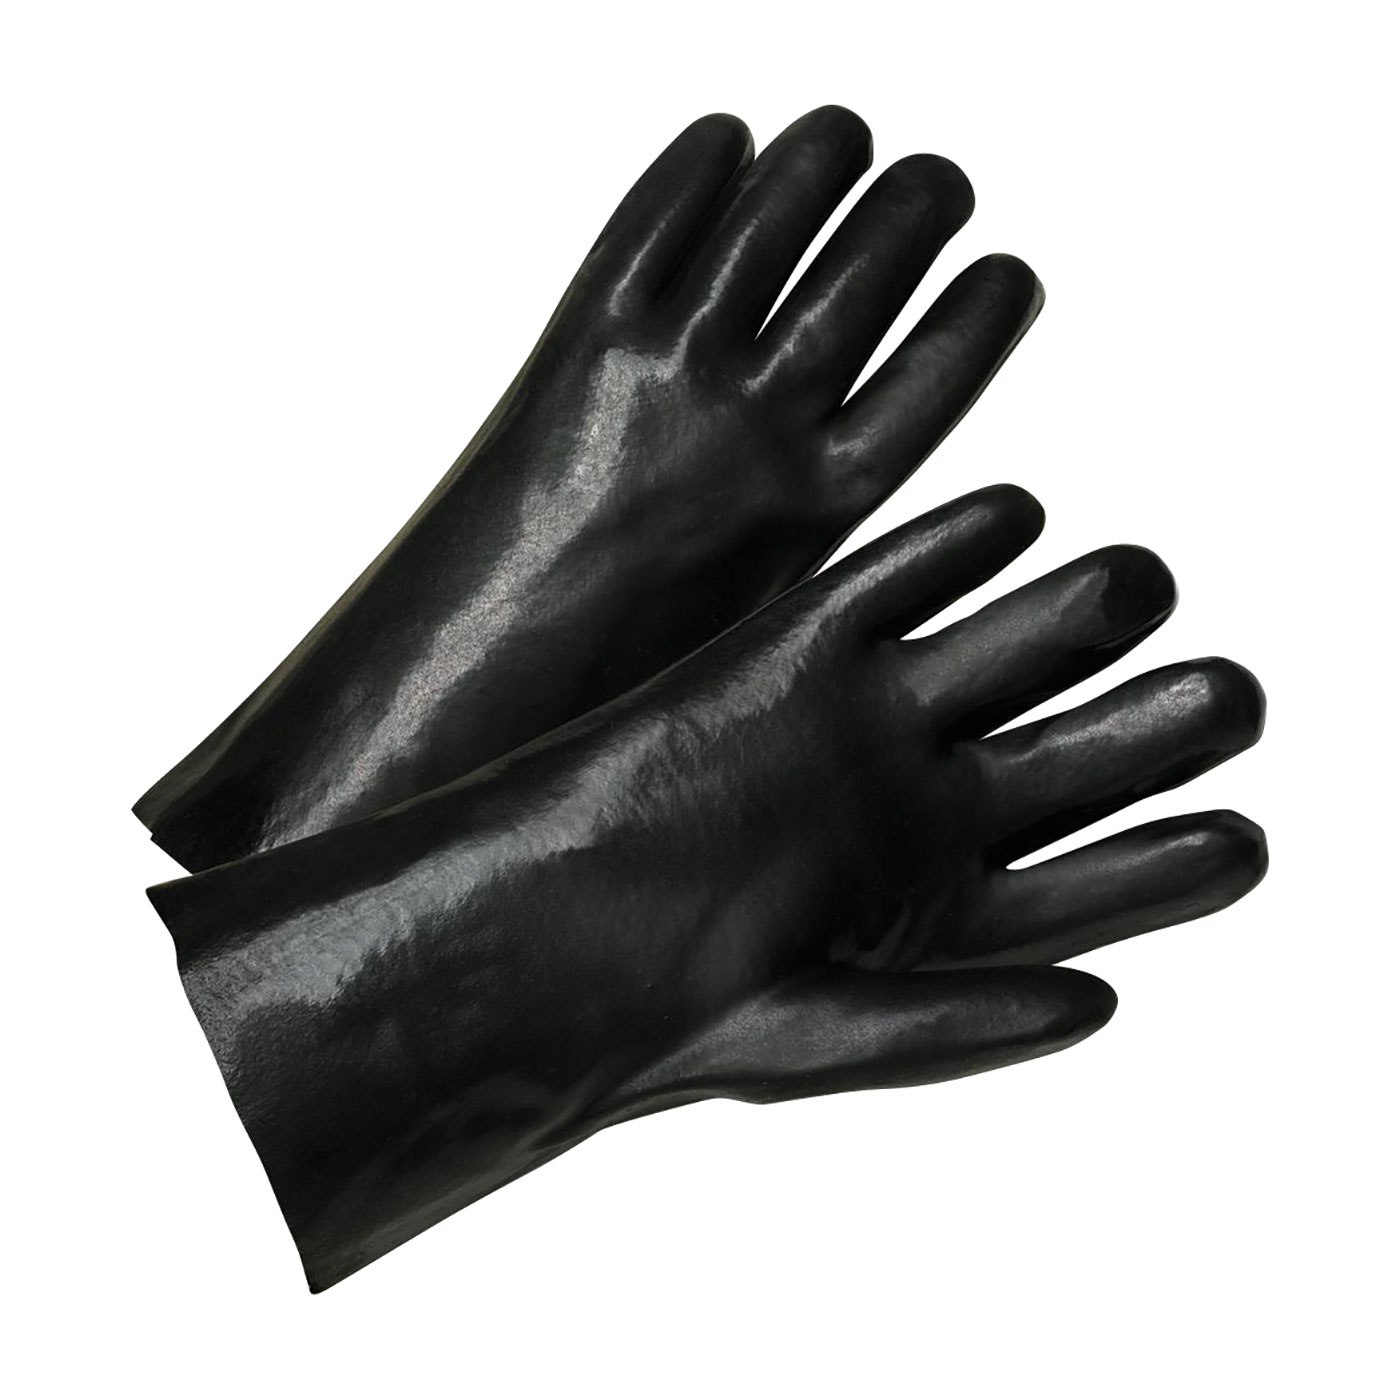 "PVC Dipped Glove with Jersey Liner and Smooth Finish - 12"", Black, L"